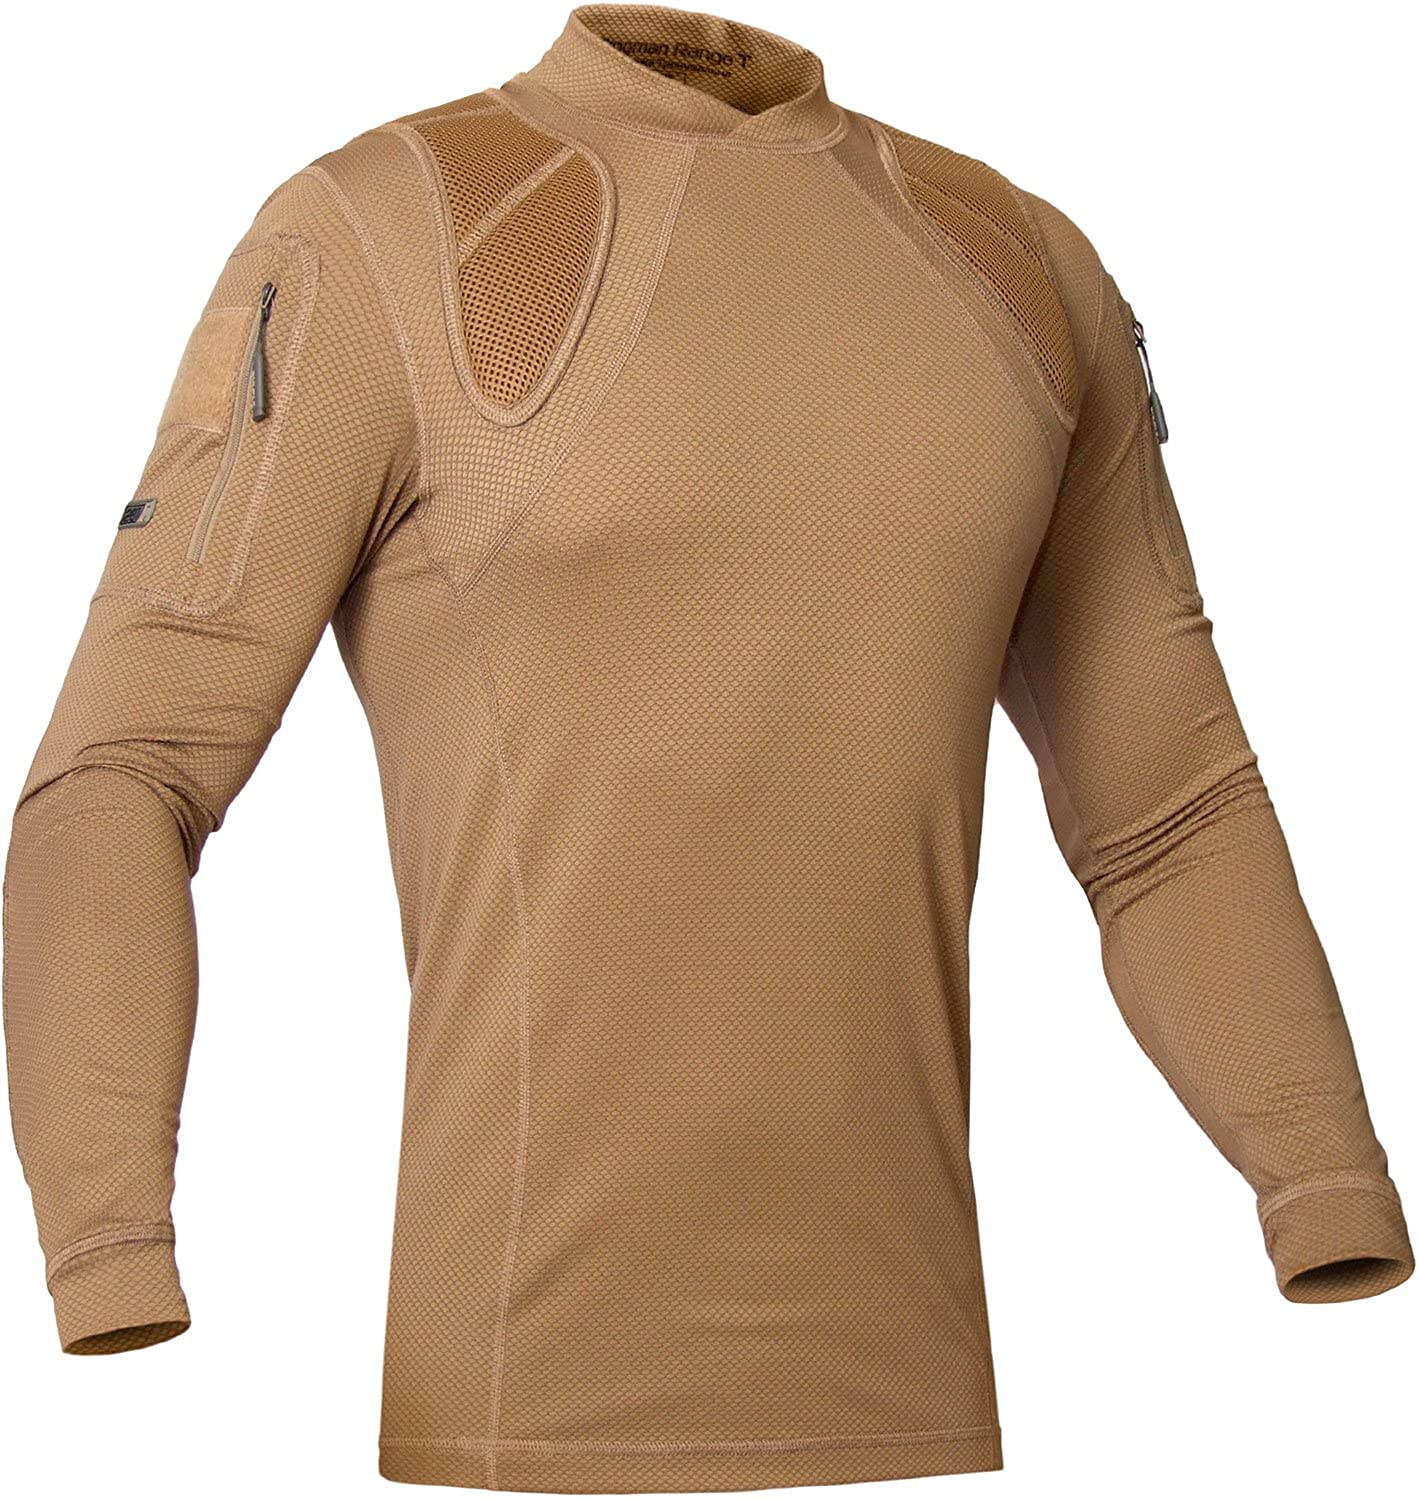 281Z Tactical Moisture Wicking Shirt - Military Training Outdoor - Polartec Delta - Frogman Line Coyote Brown)